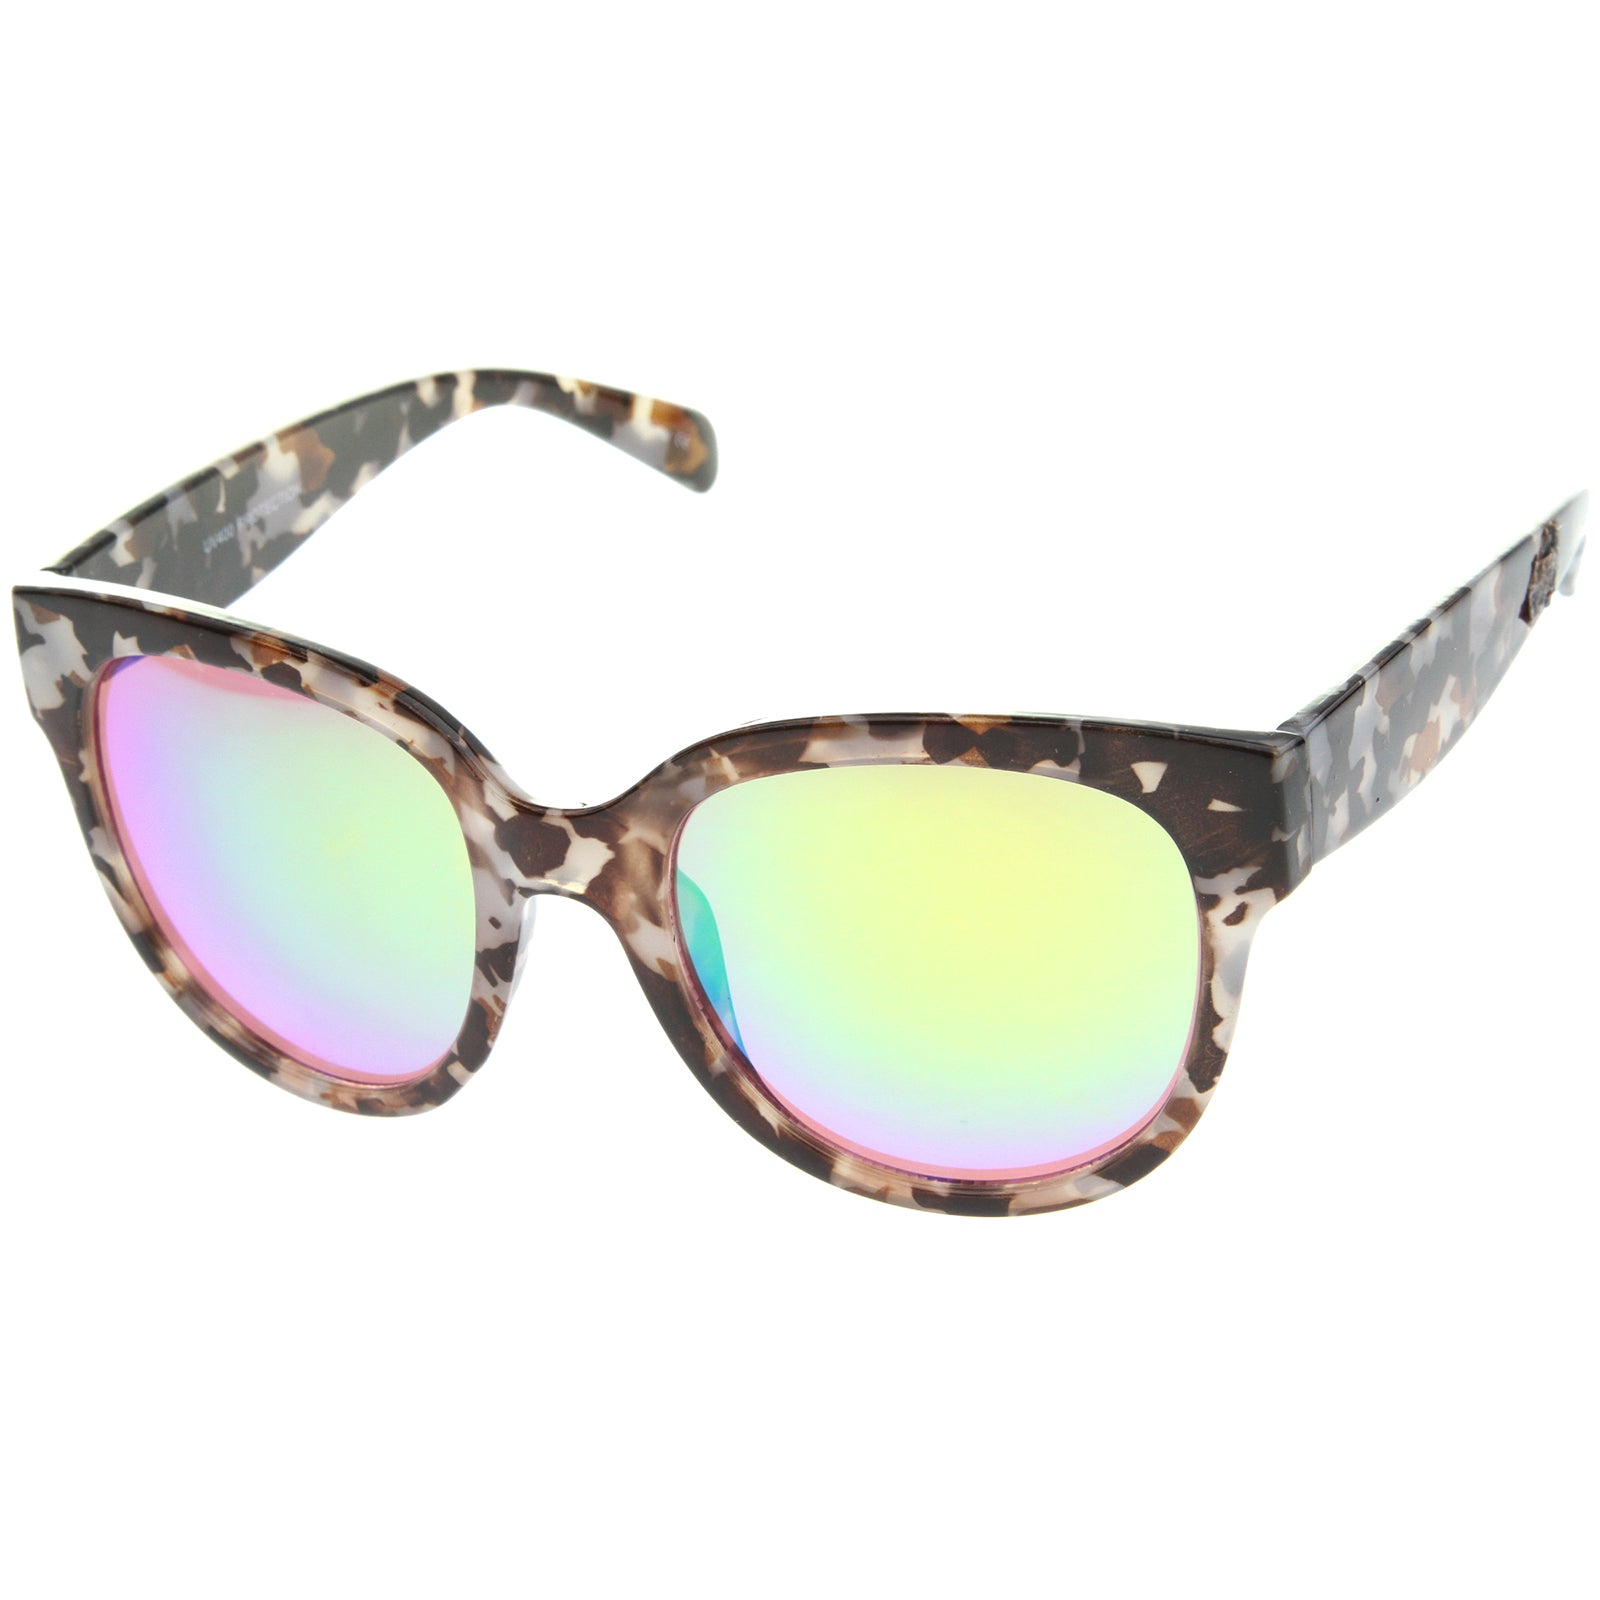 Womens Cat Eye Sunglasses With UV400 Protected Mirrored Lens - sunglass.la - 6